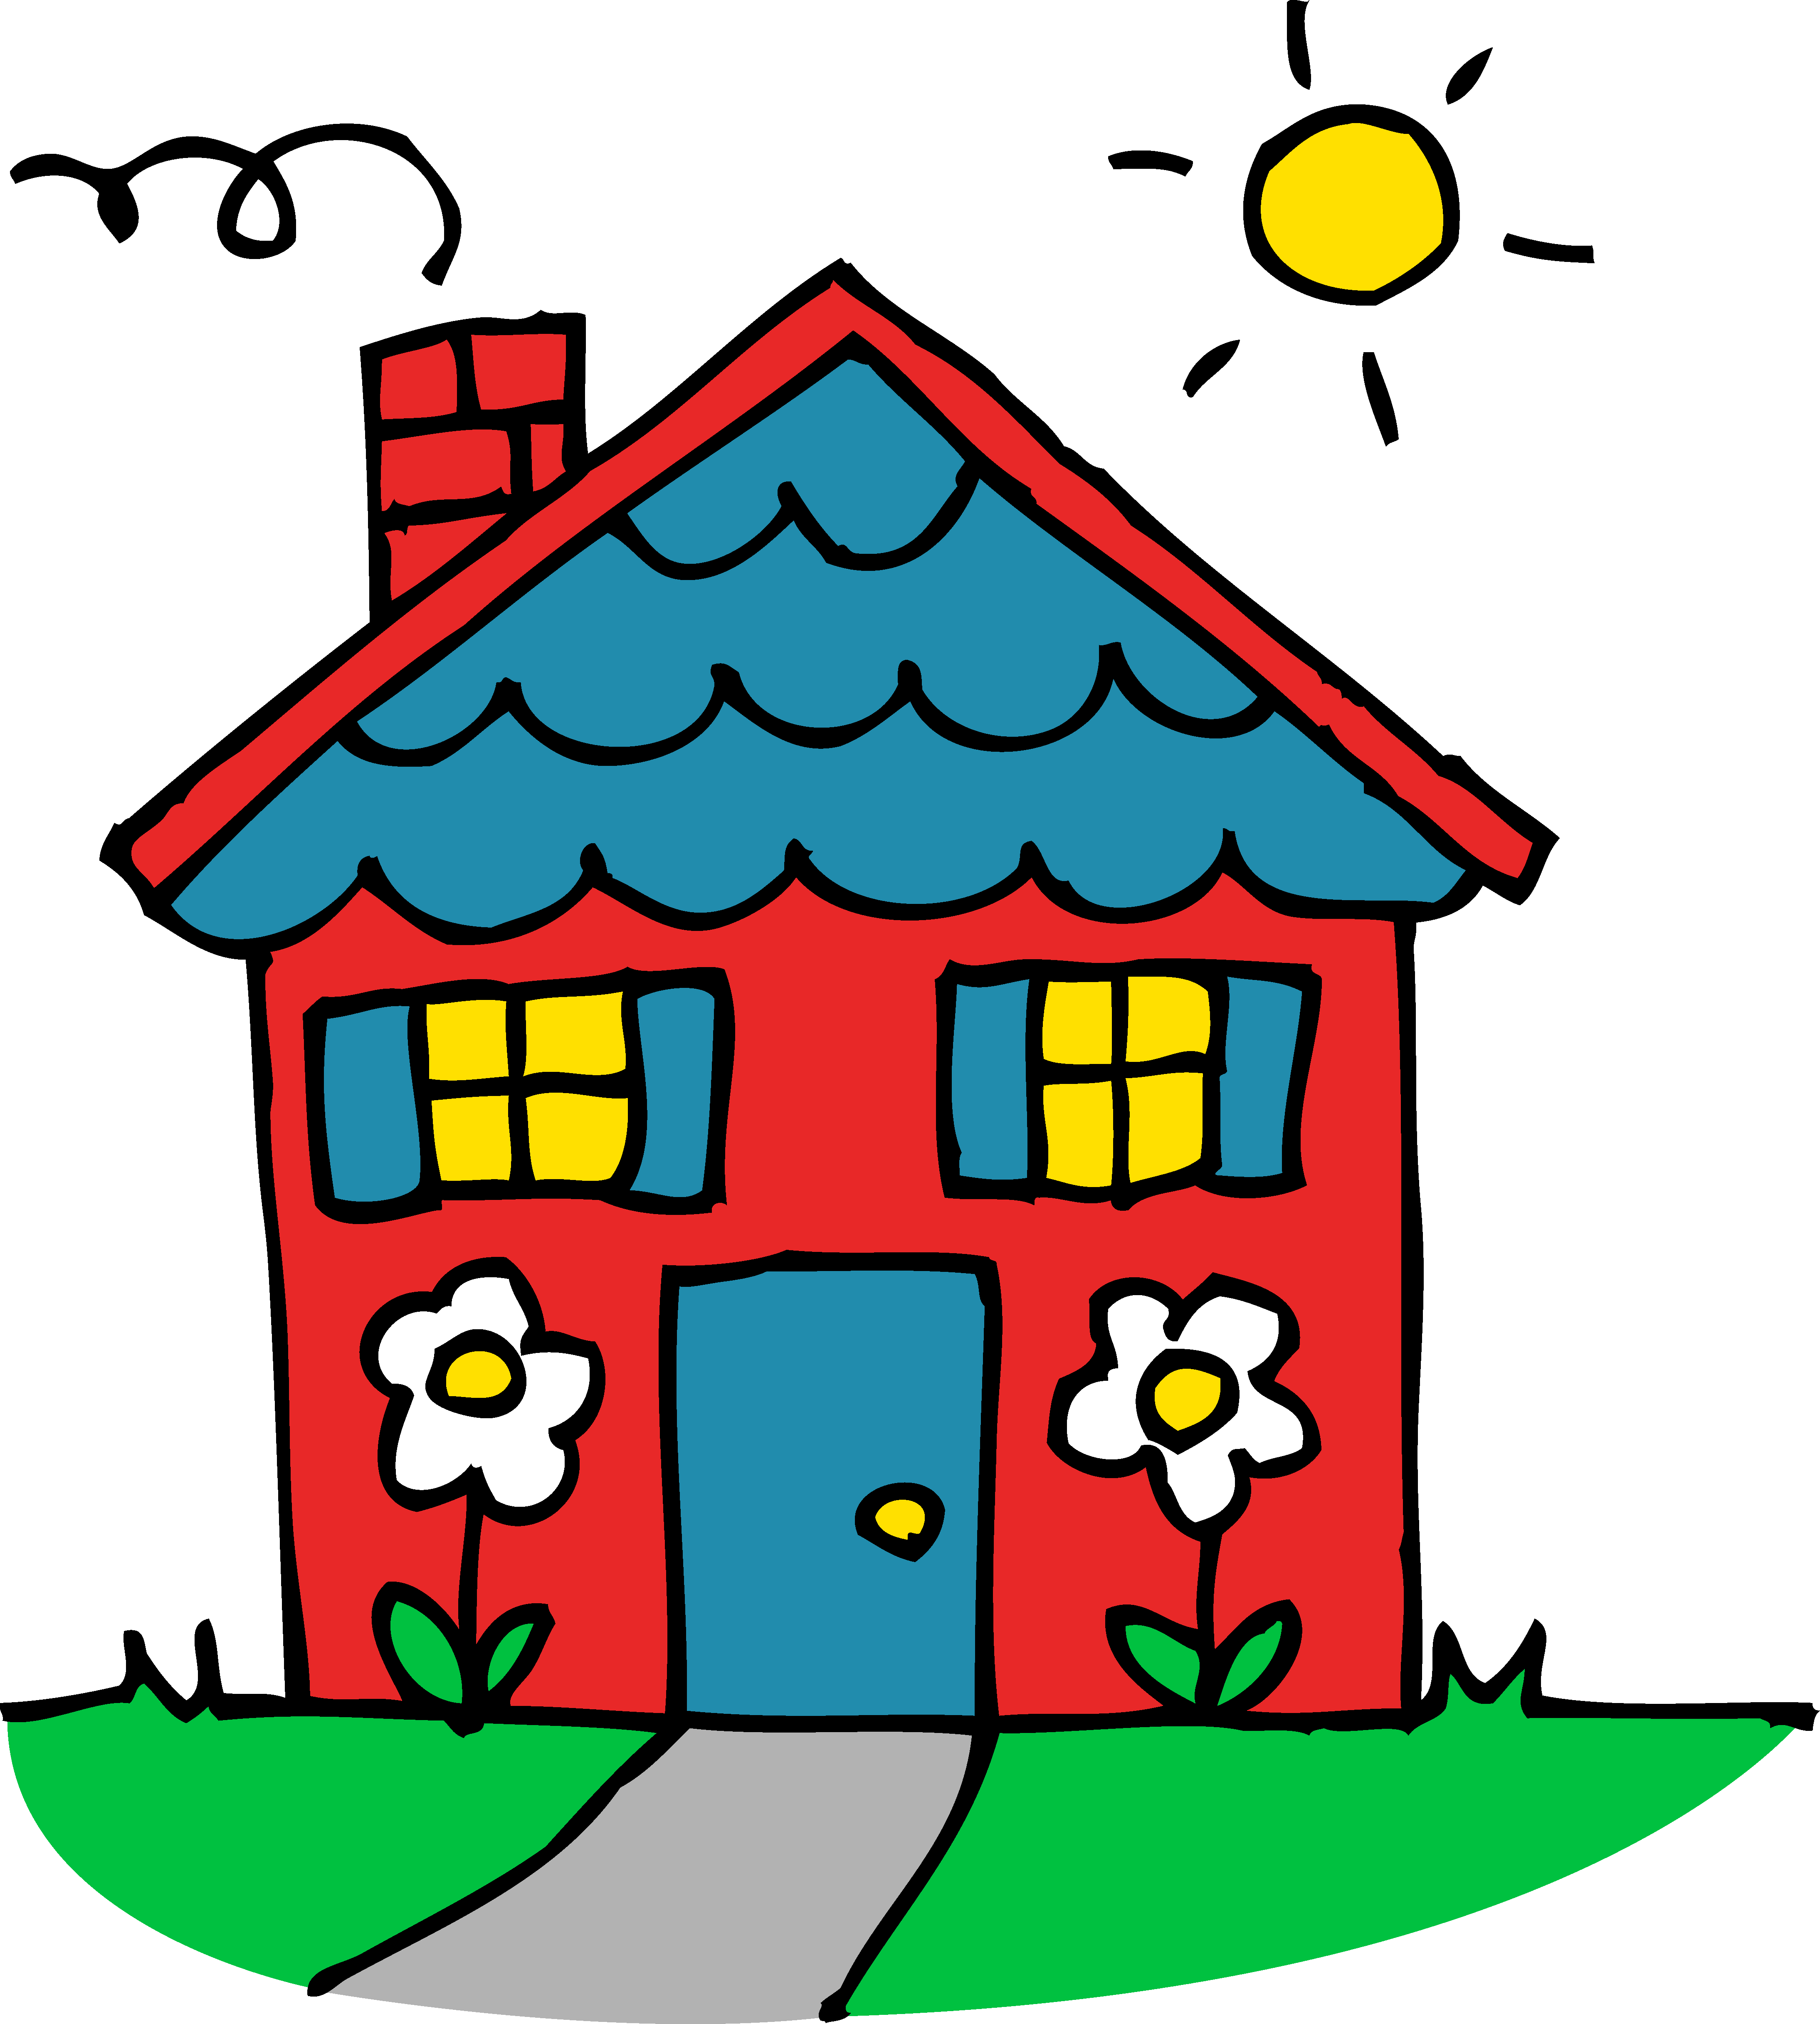 cute house clipart u0026middot; house clipart